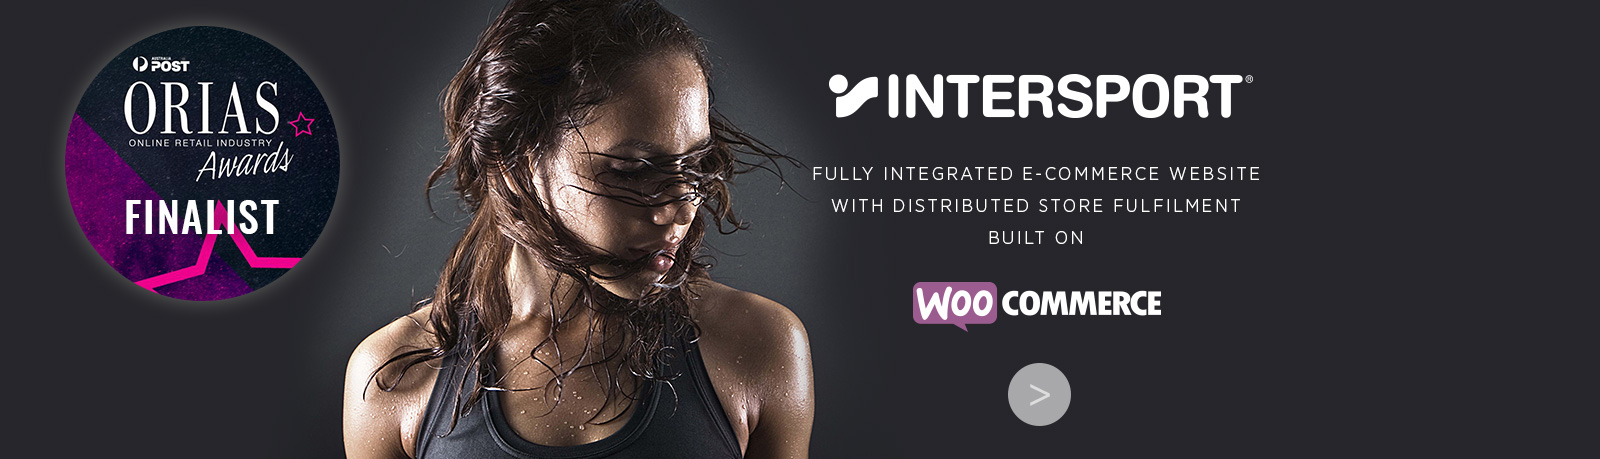 Intersport Fully Integrated eCommerce website with distributed store fulfilment built on WooCommerce. Nominated for ORIA award for best in-store initiative stockinstore